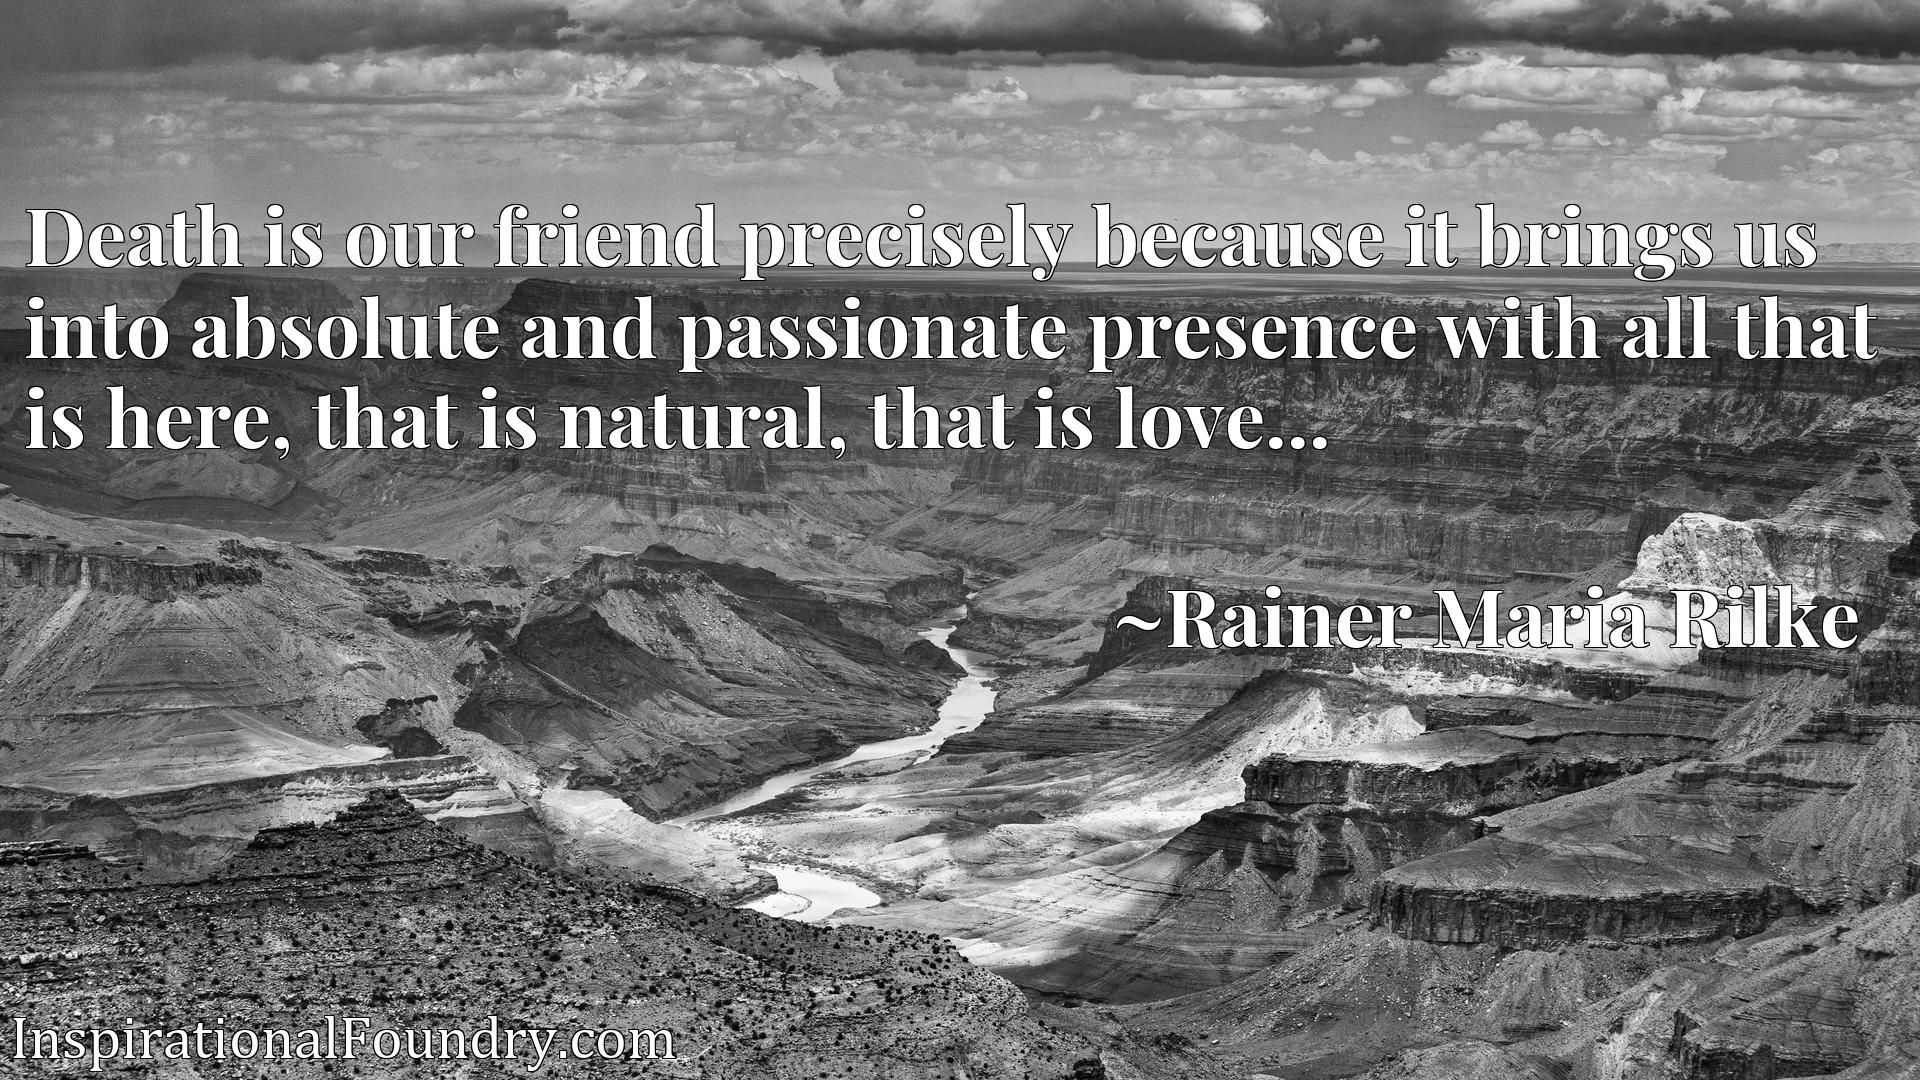 Quote Picture :Death is our friend precisely because it brings us into absolute and passionate presence with all that is here, that is natural, that is love...